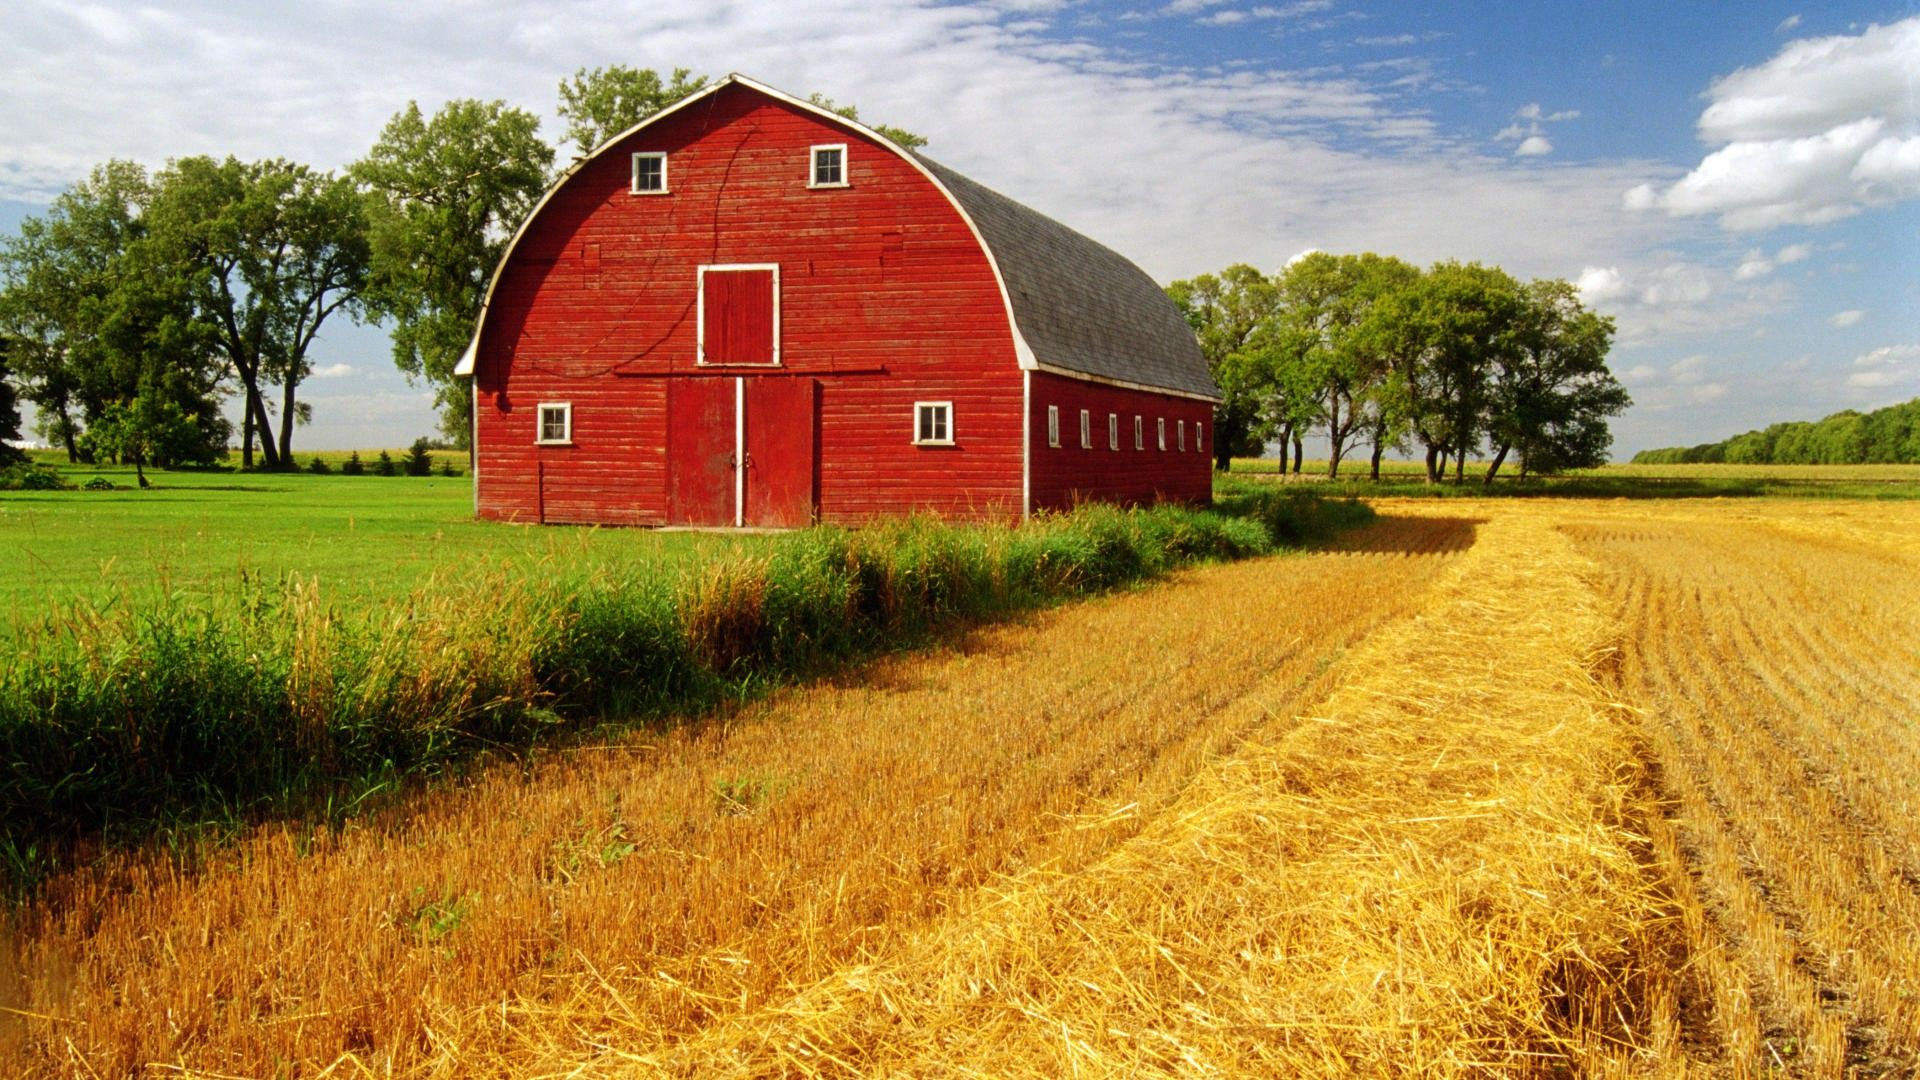 Barn Wallpapers Backgrounds